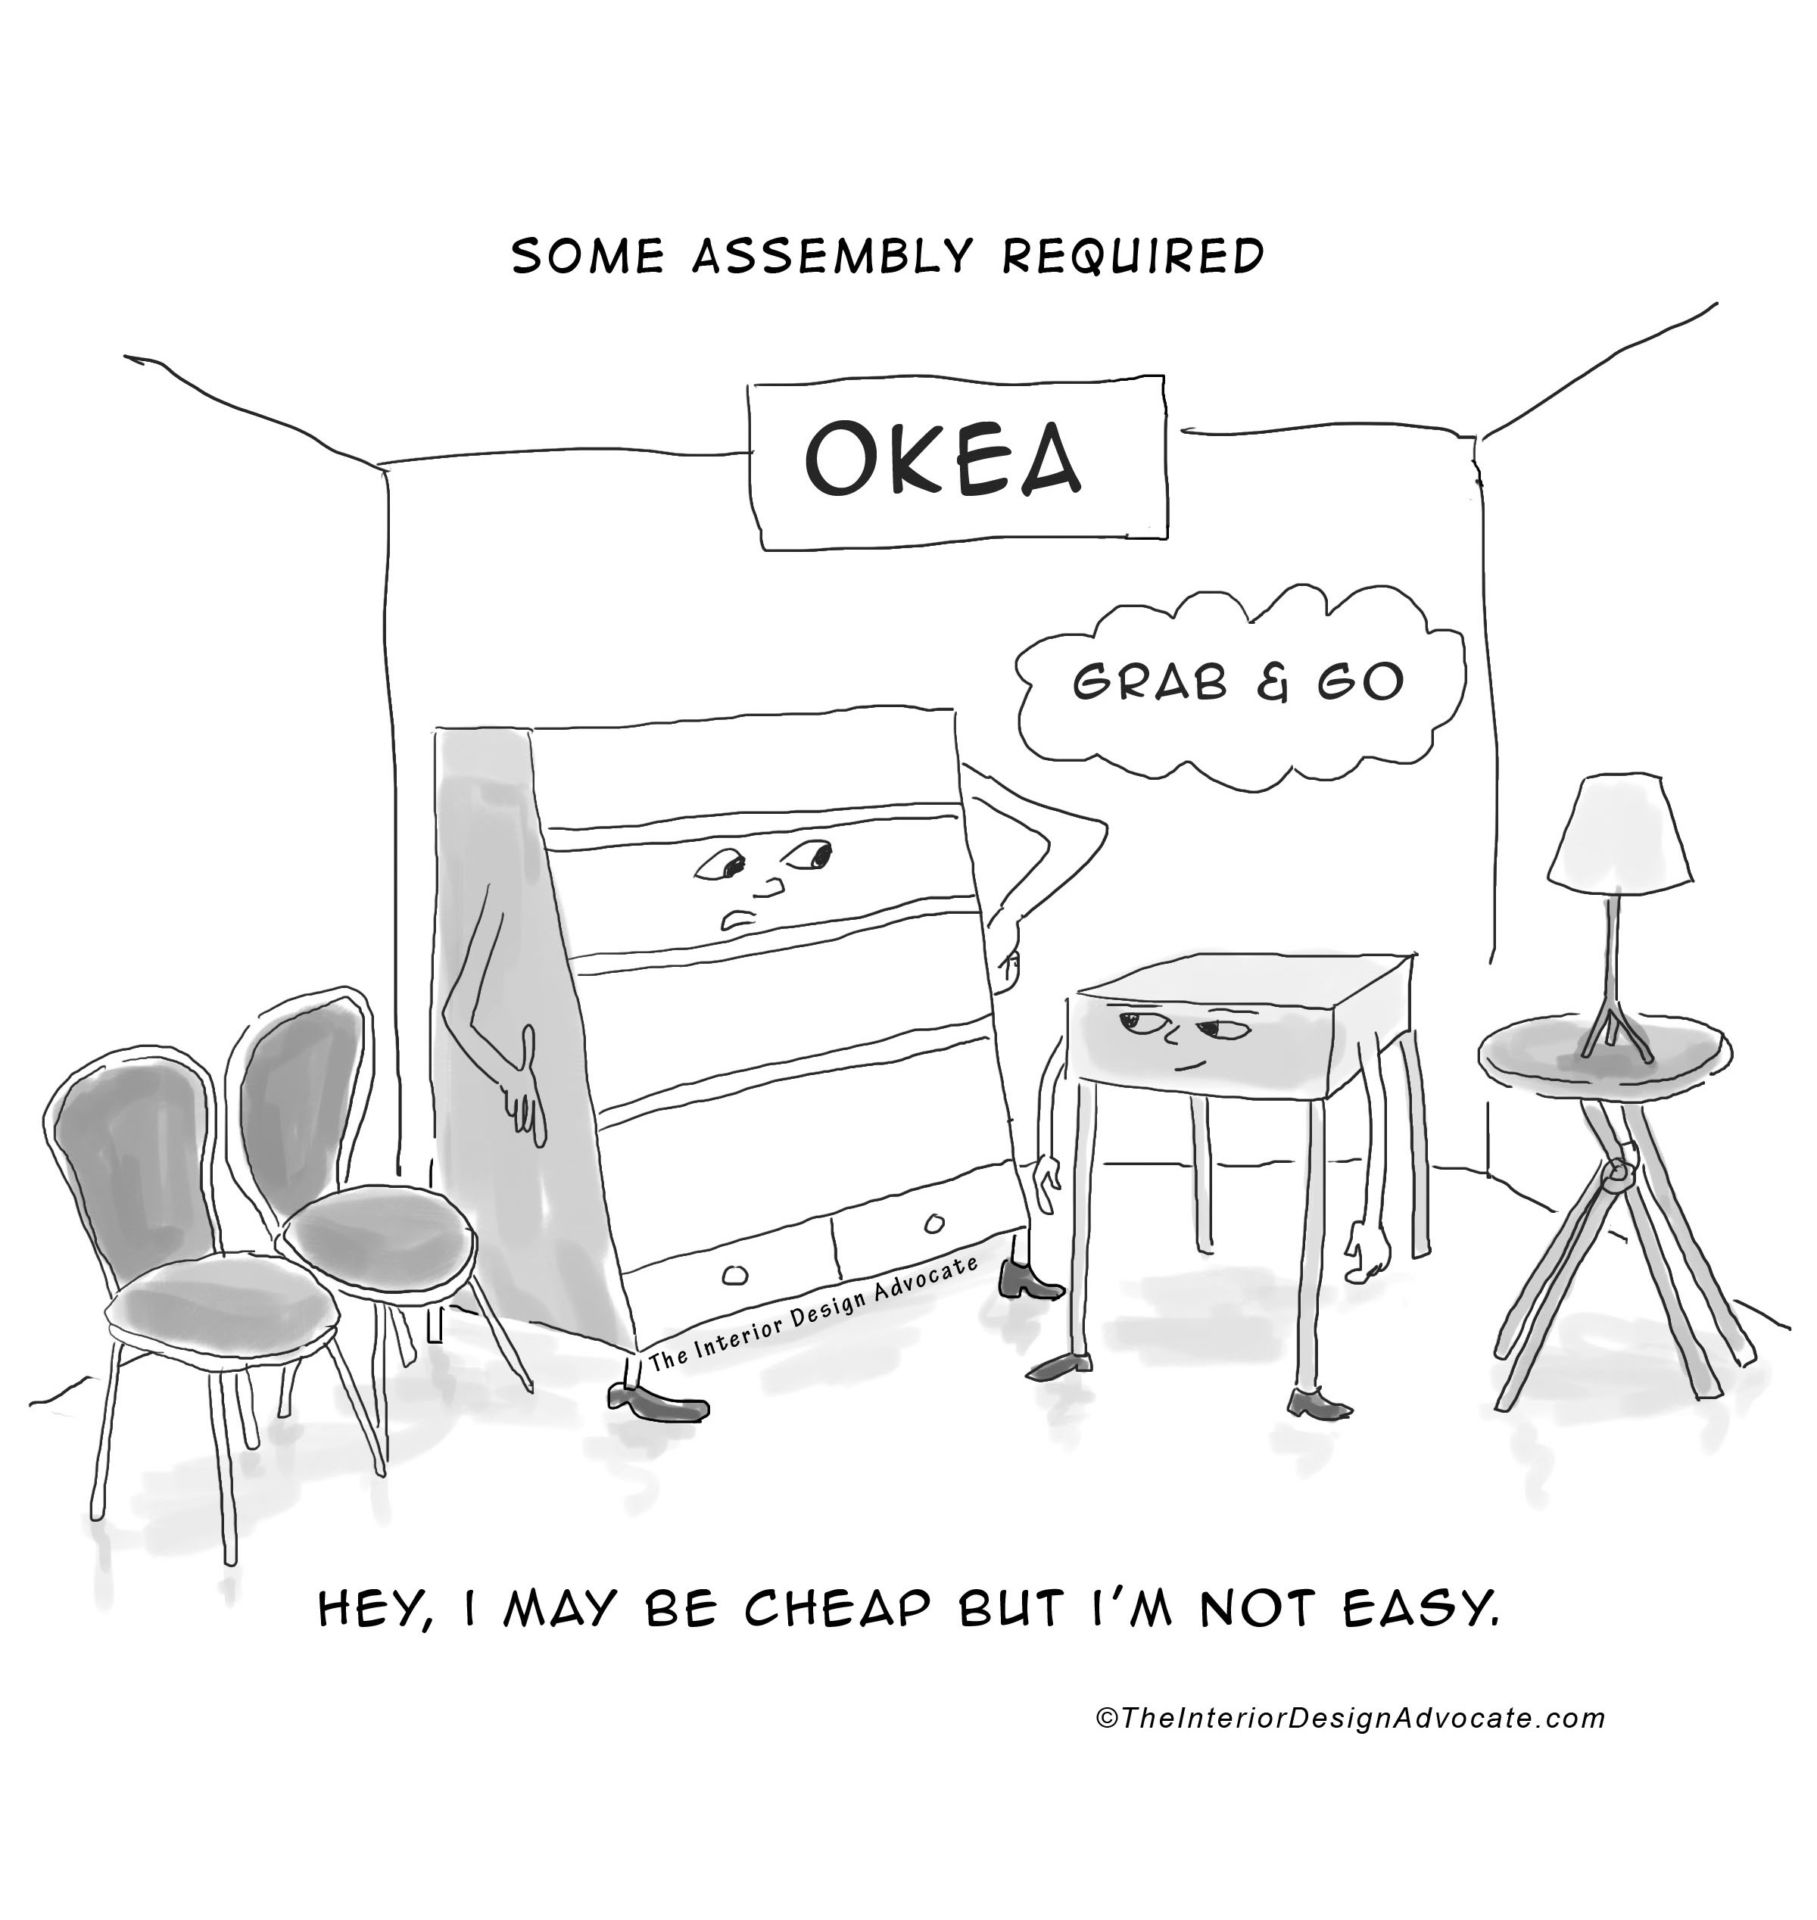 Assembly Required Furniture design giggles: some assembly required - the interior design advocate